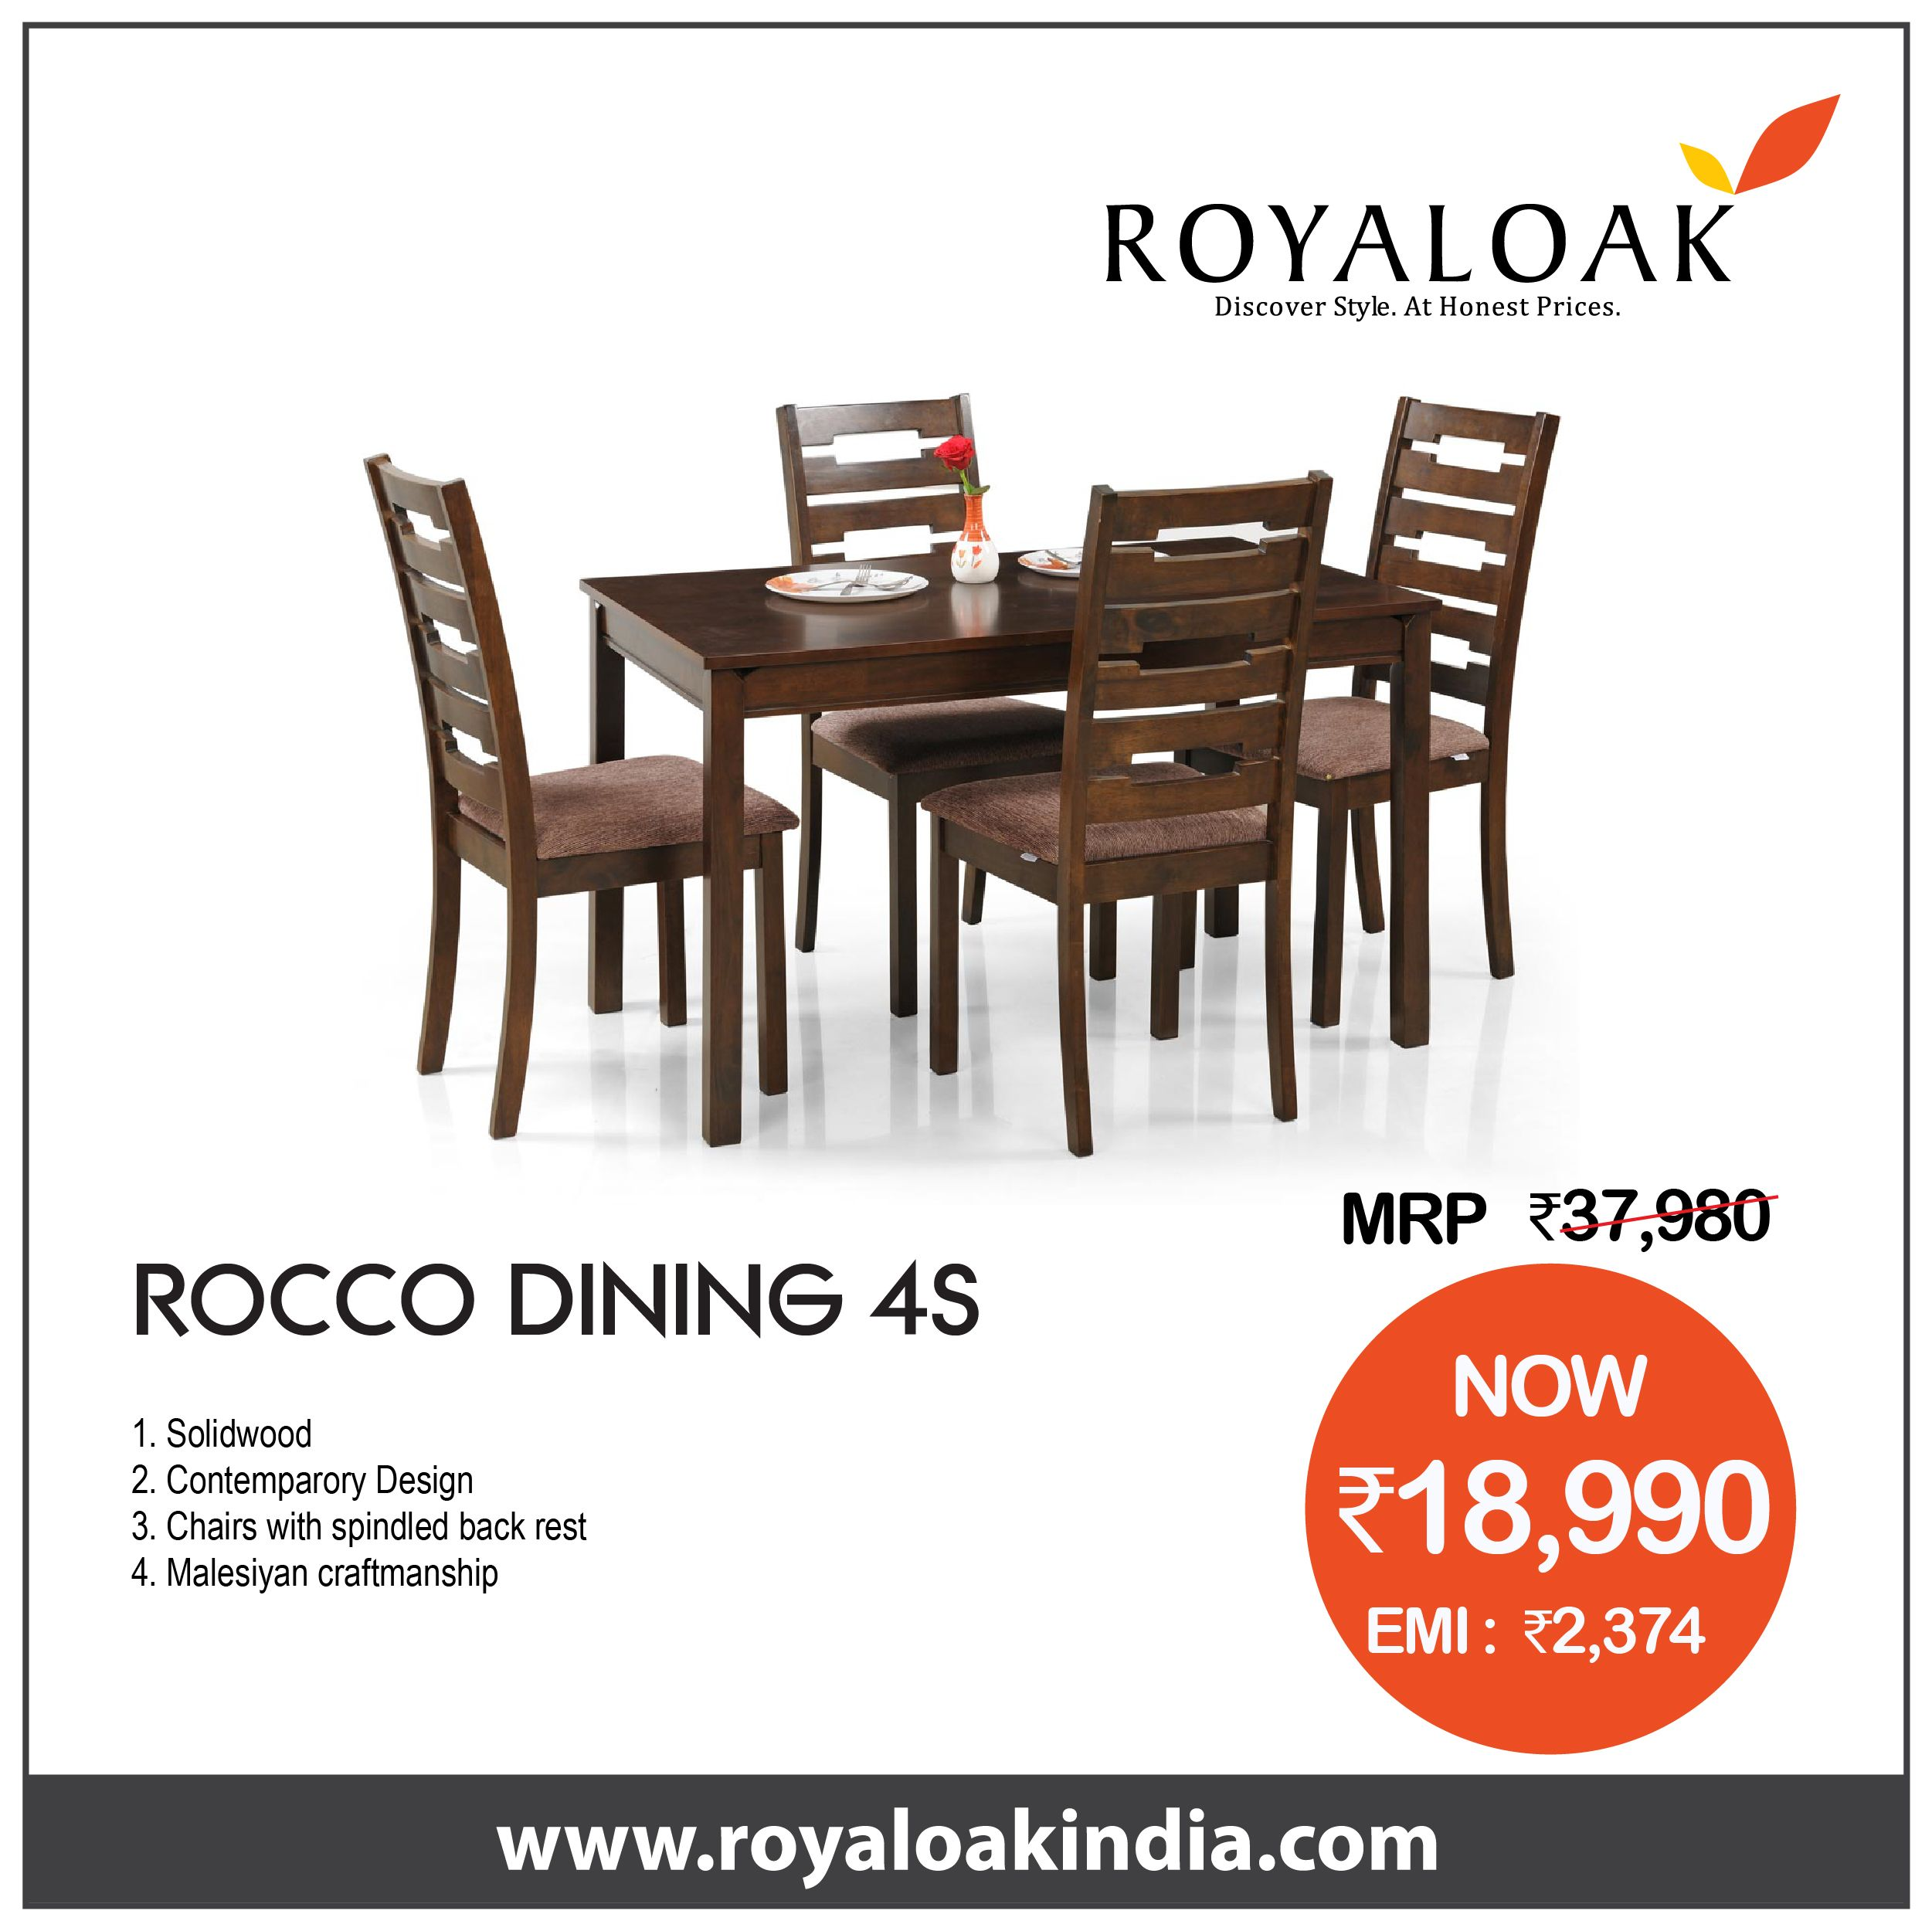 Pin By Royaloak Furniture On Royaloak Dining Set 4 Seater With Images Buy Furniture Online Online Furniture Buying Furniture